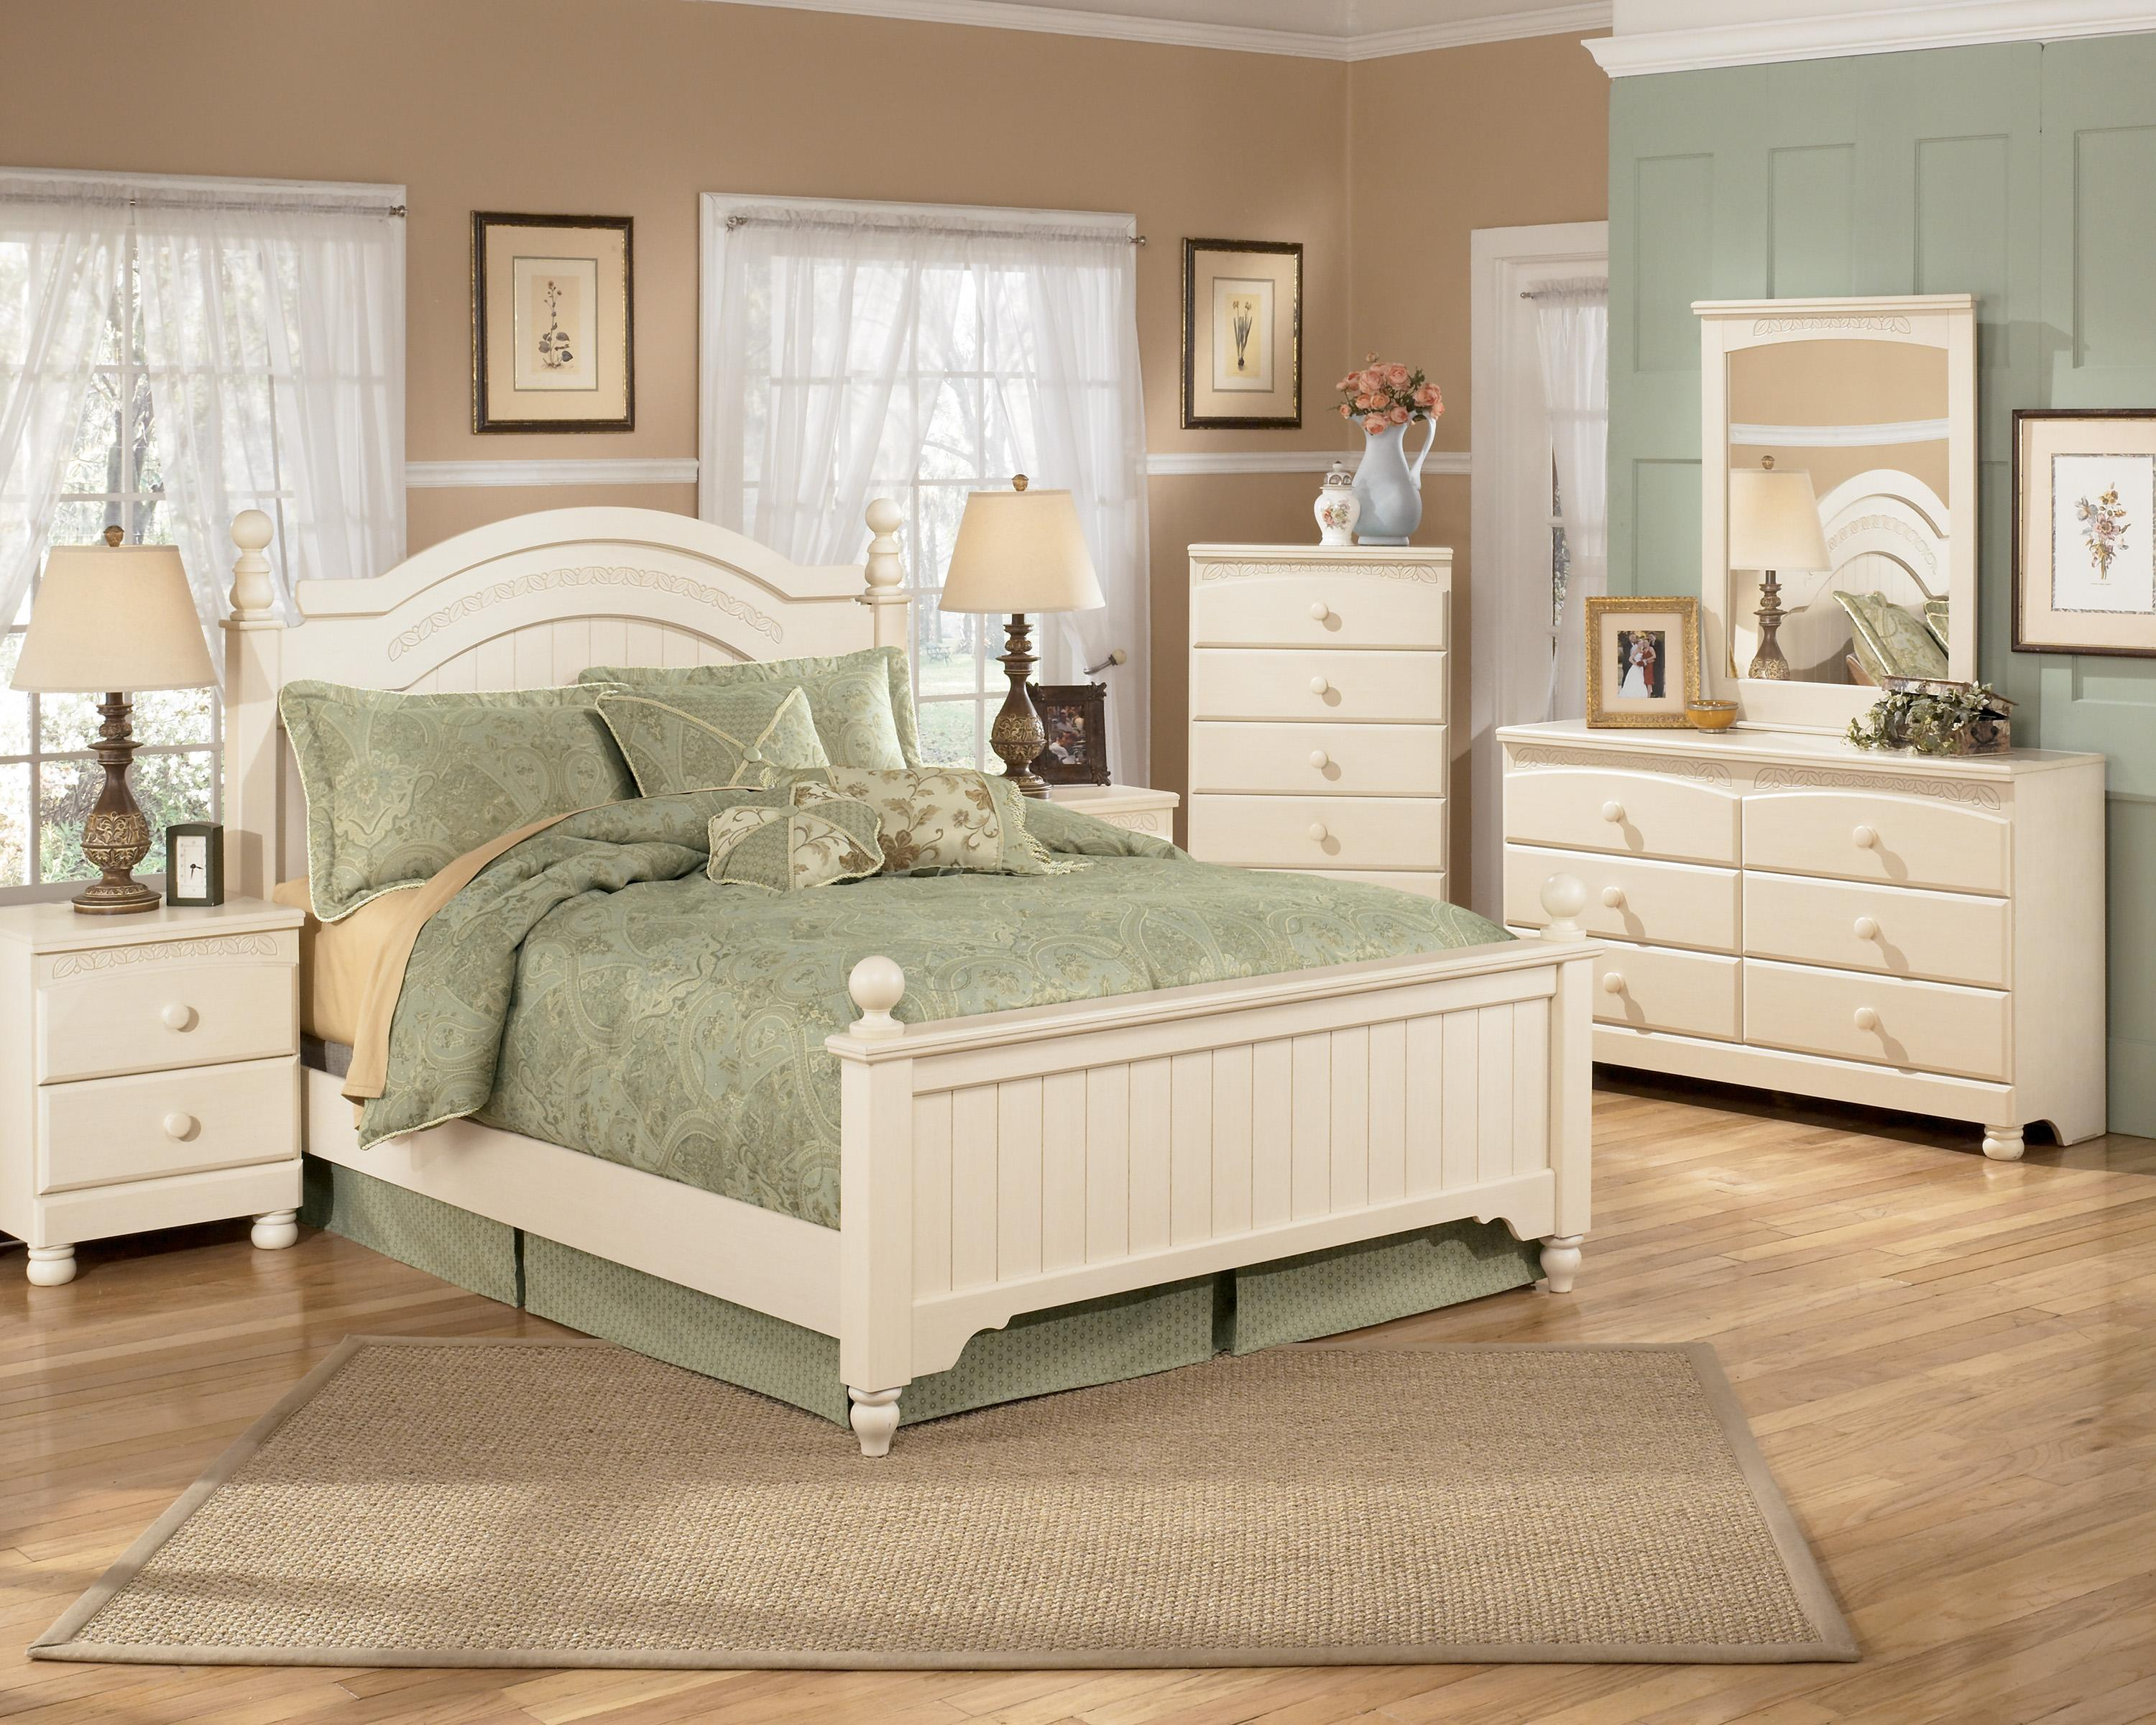 Signature Design by Ashley Cottage Retreat Full Bedroom Group - Item Number: B213 F Bedroom Group 2